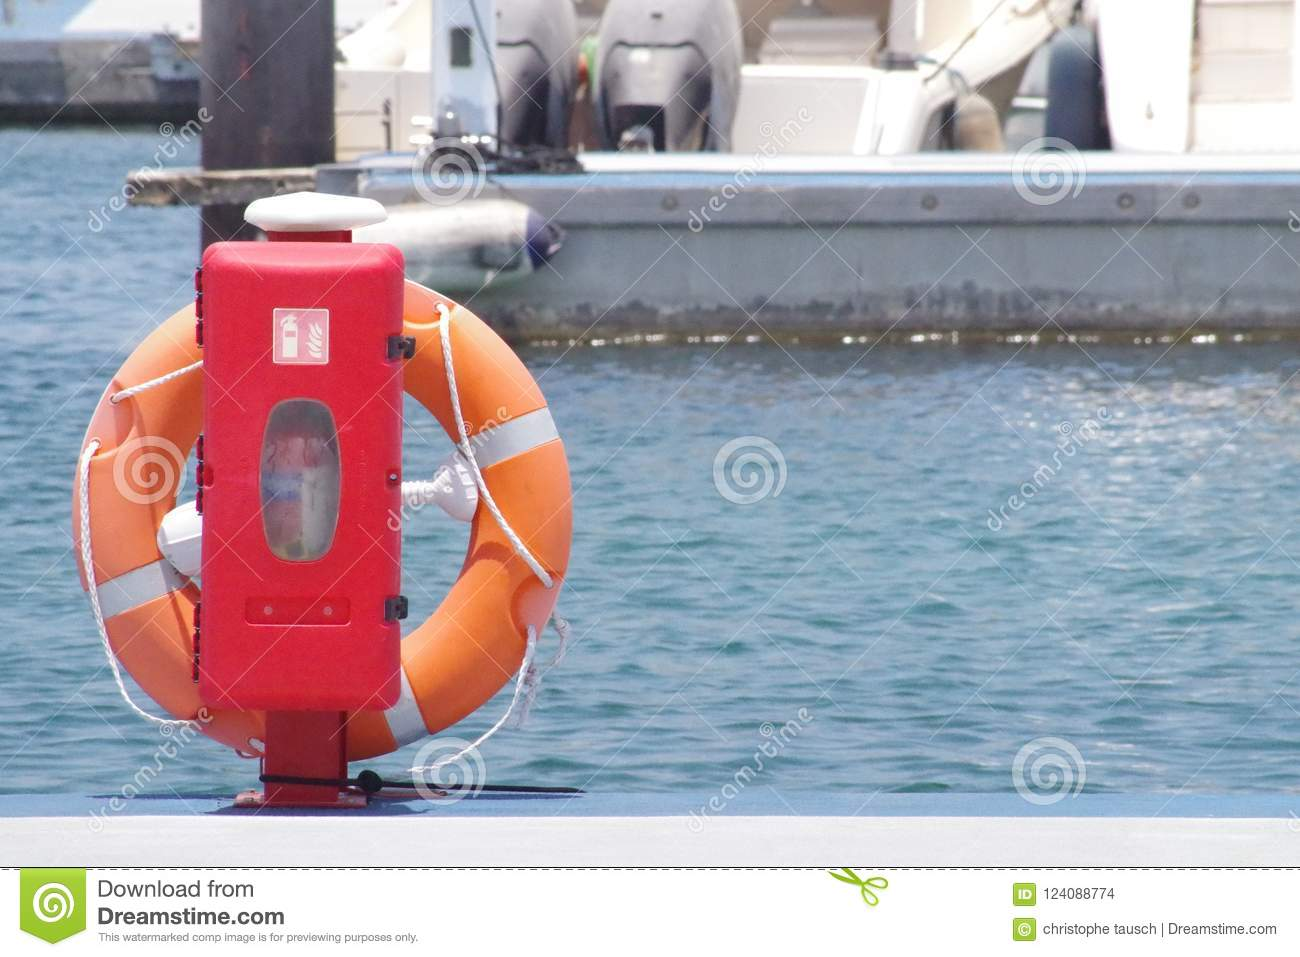 Lifebuoy in position ready to be deployed if needed. Floating device.